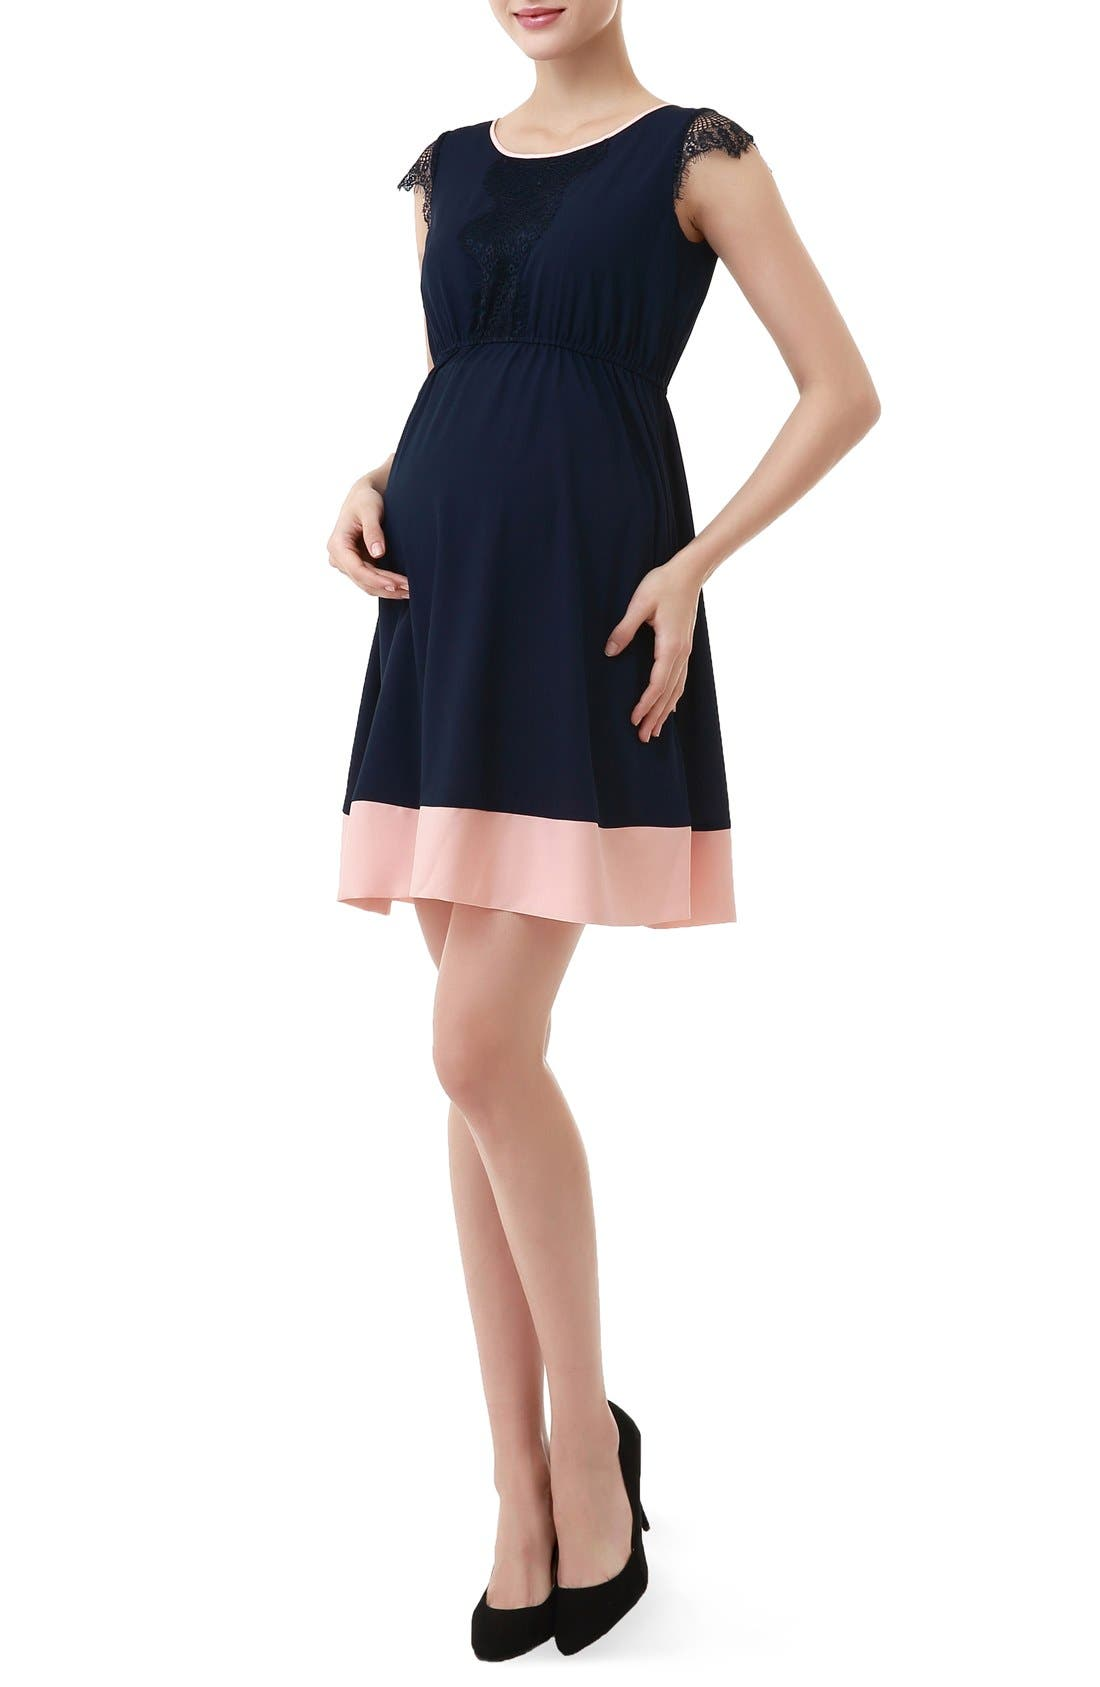 Nell Fit & Flare Maternity Dress,                             Main thumbnail 1, color,                             Navy